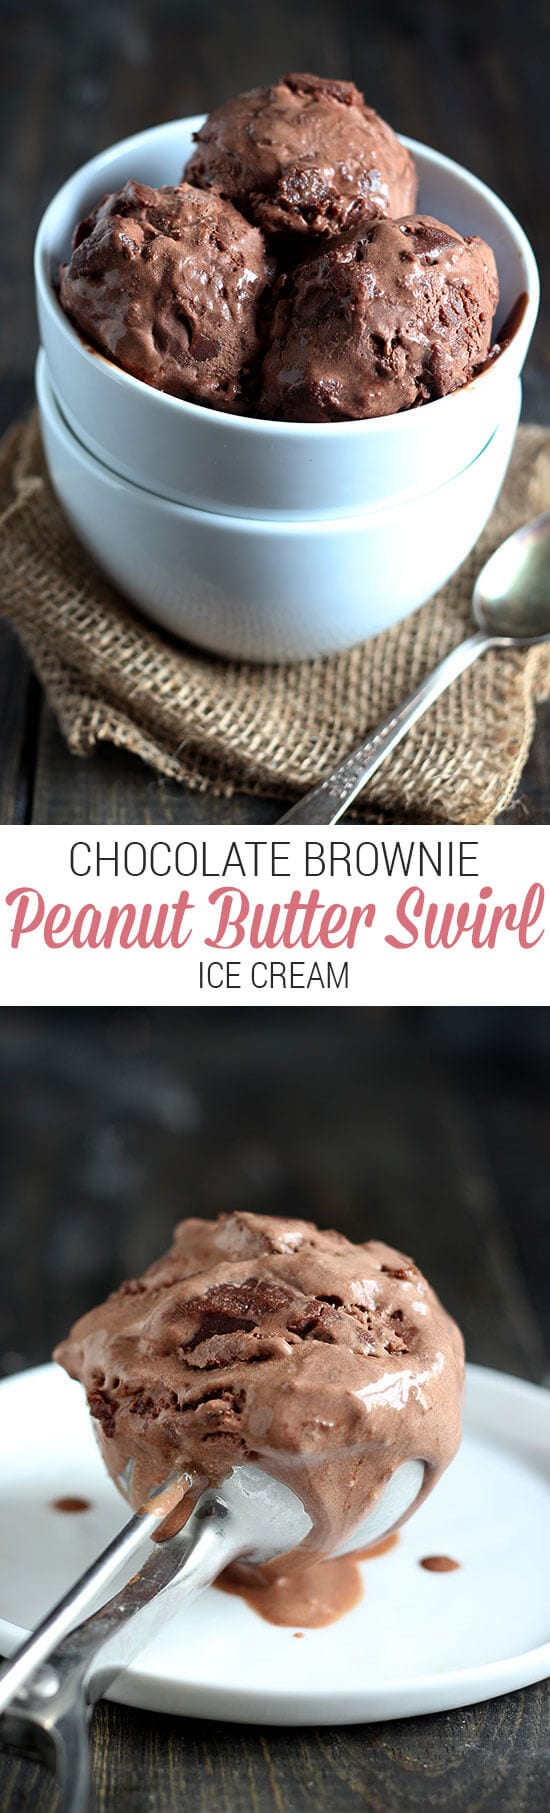 My favorite ice cream OF ALL TIME! Every bite is heaven!